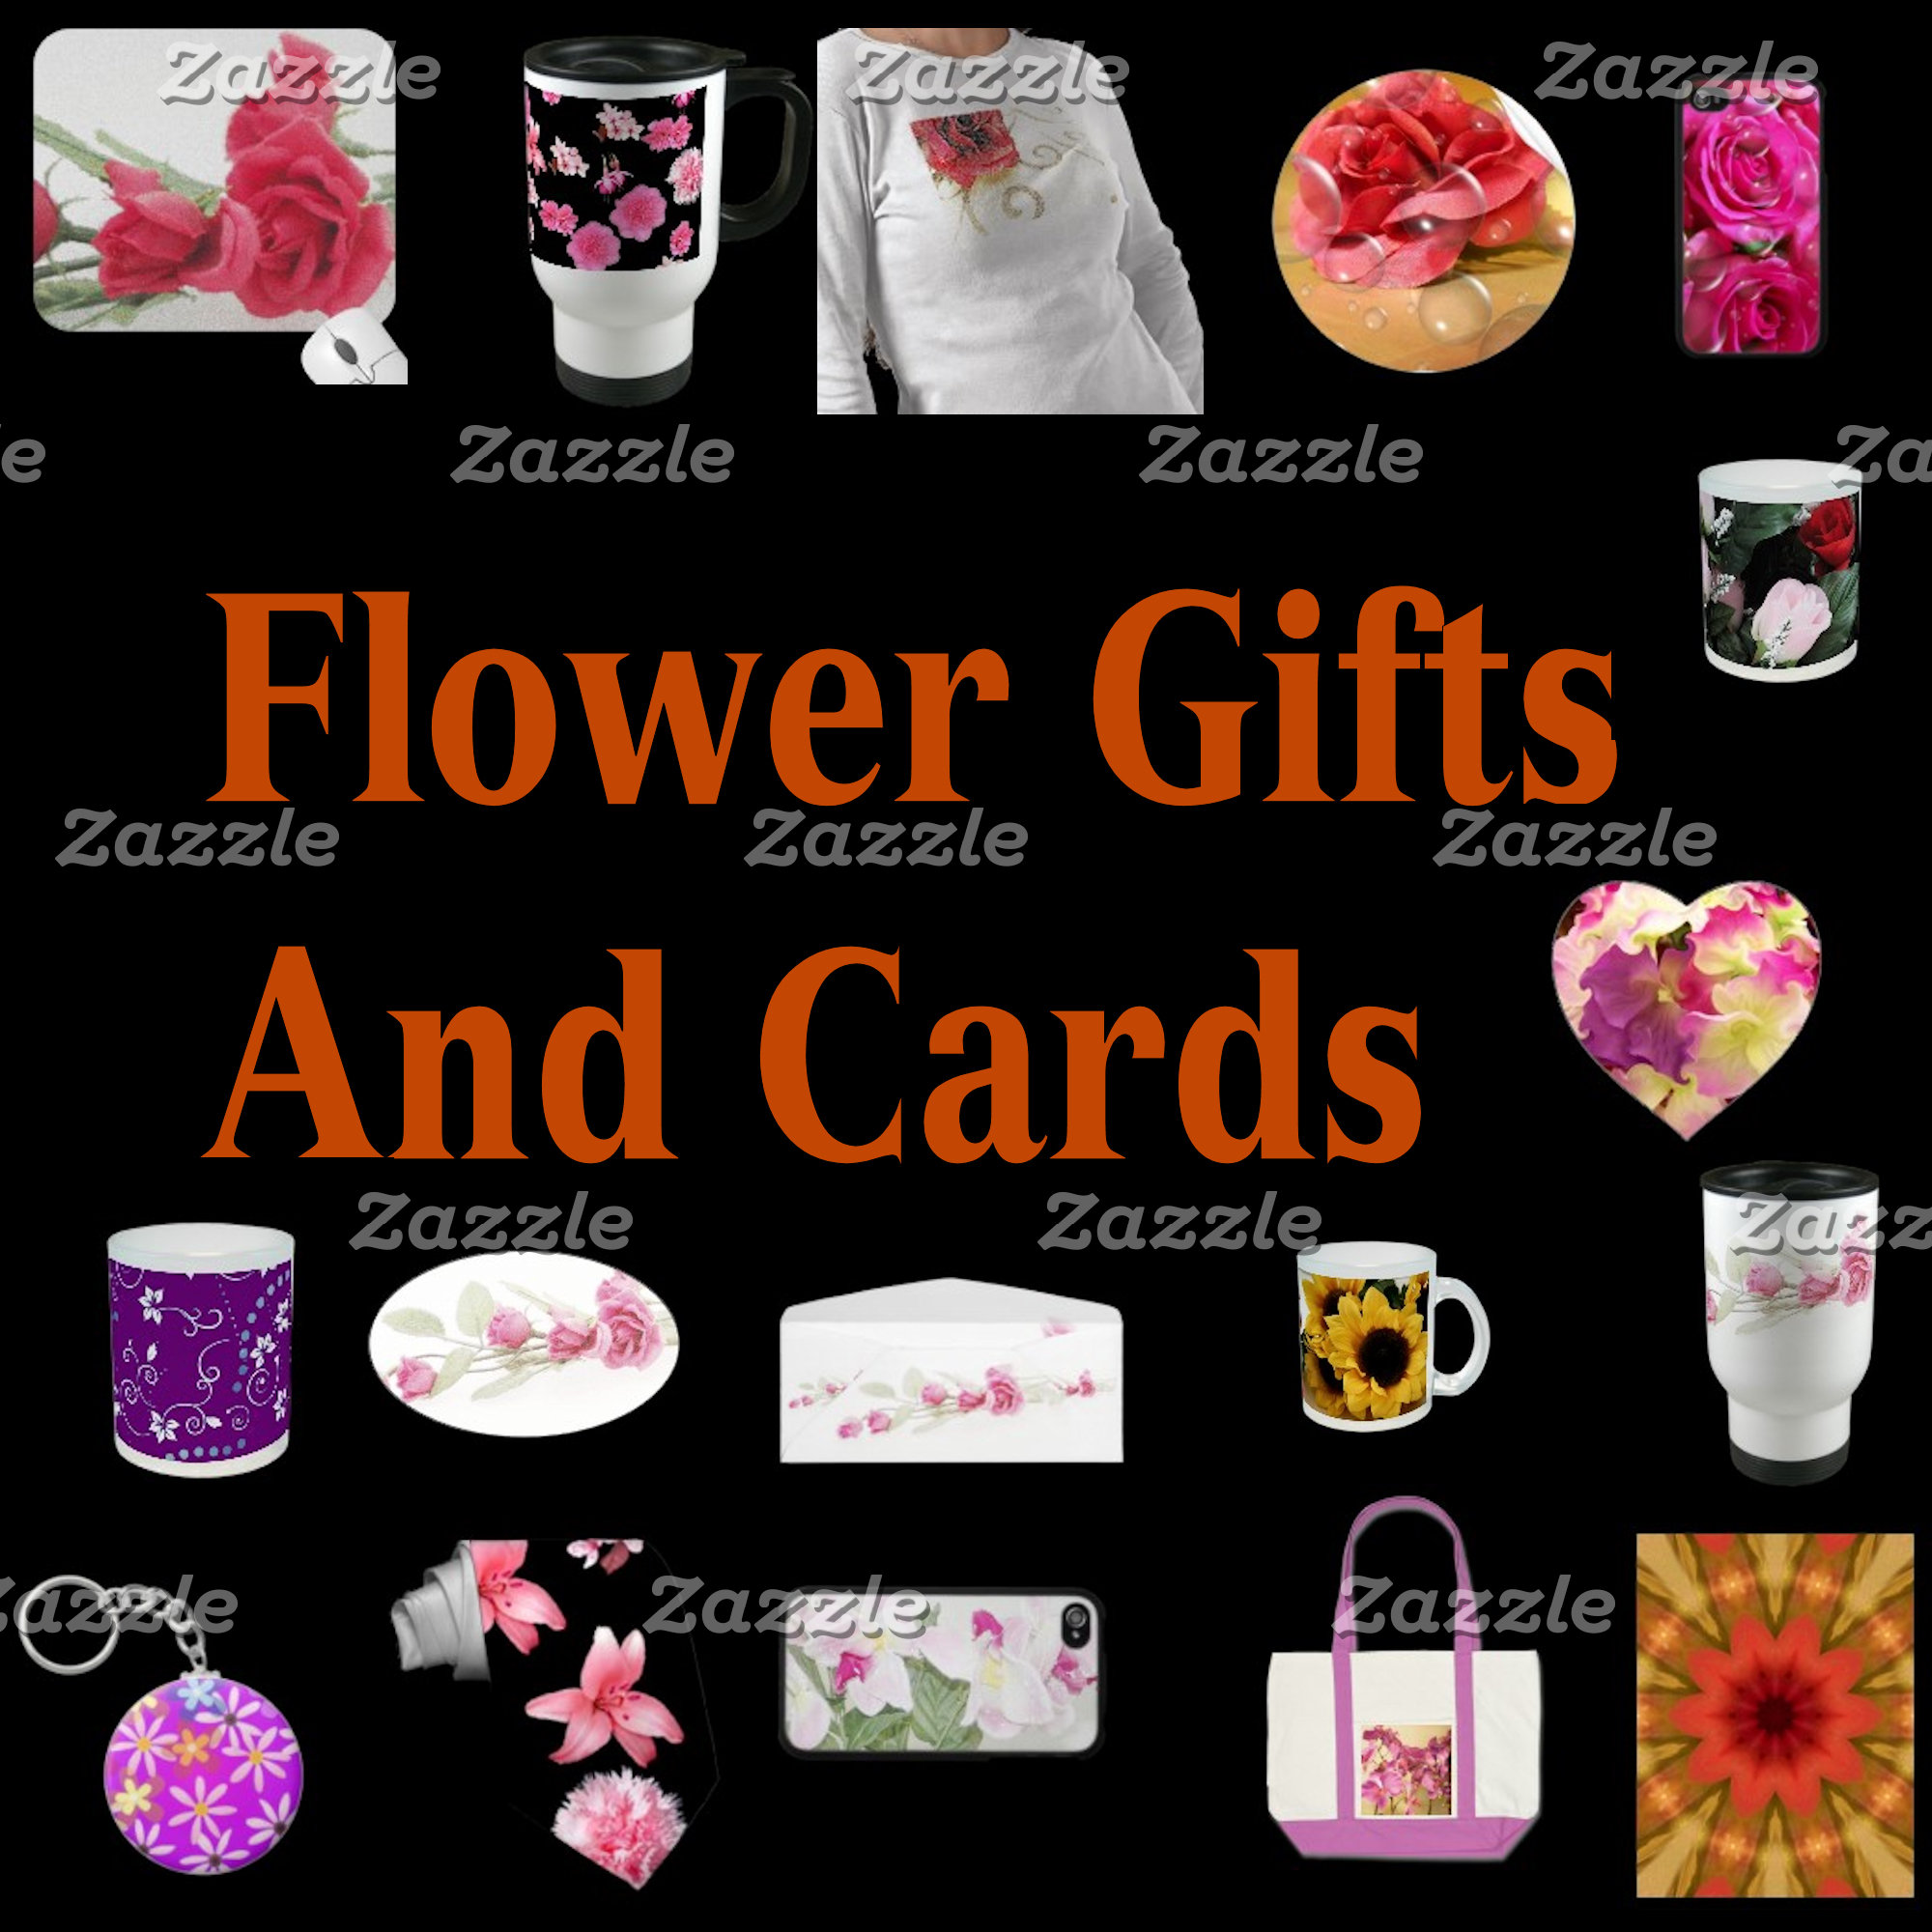 Flower Gifts And Cards